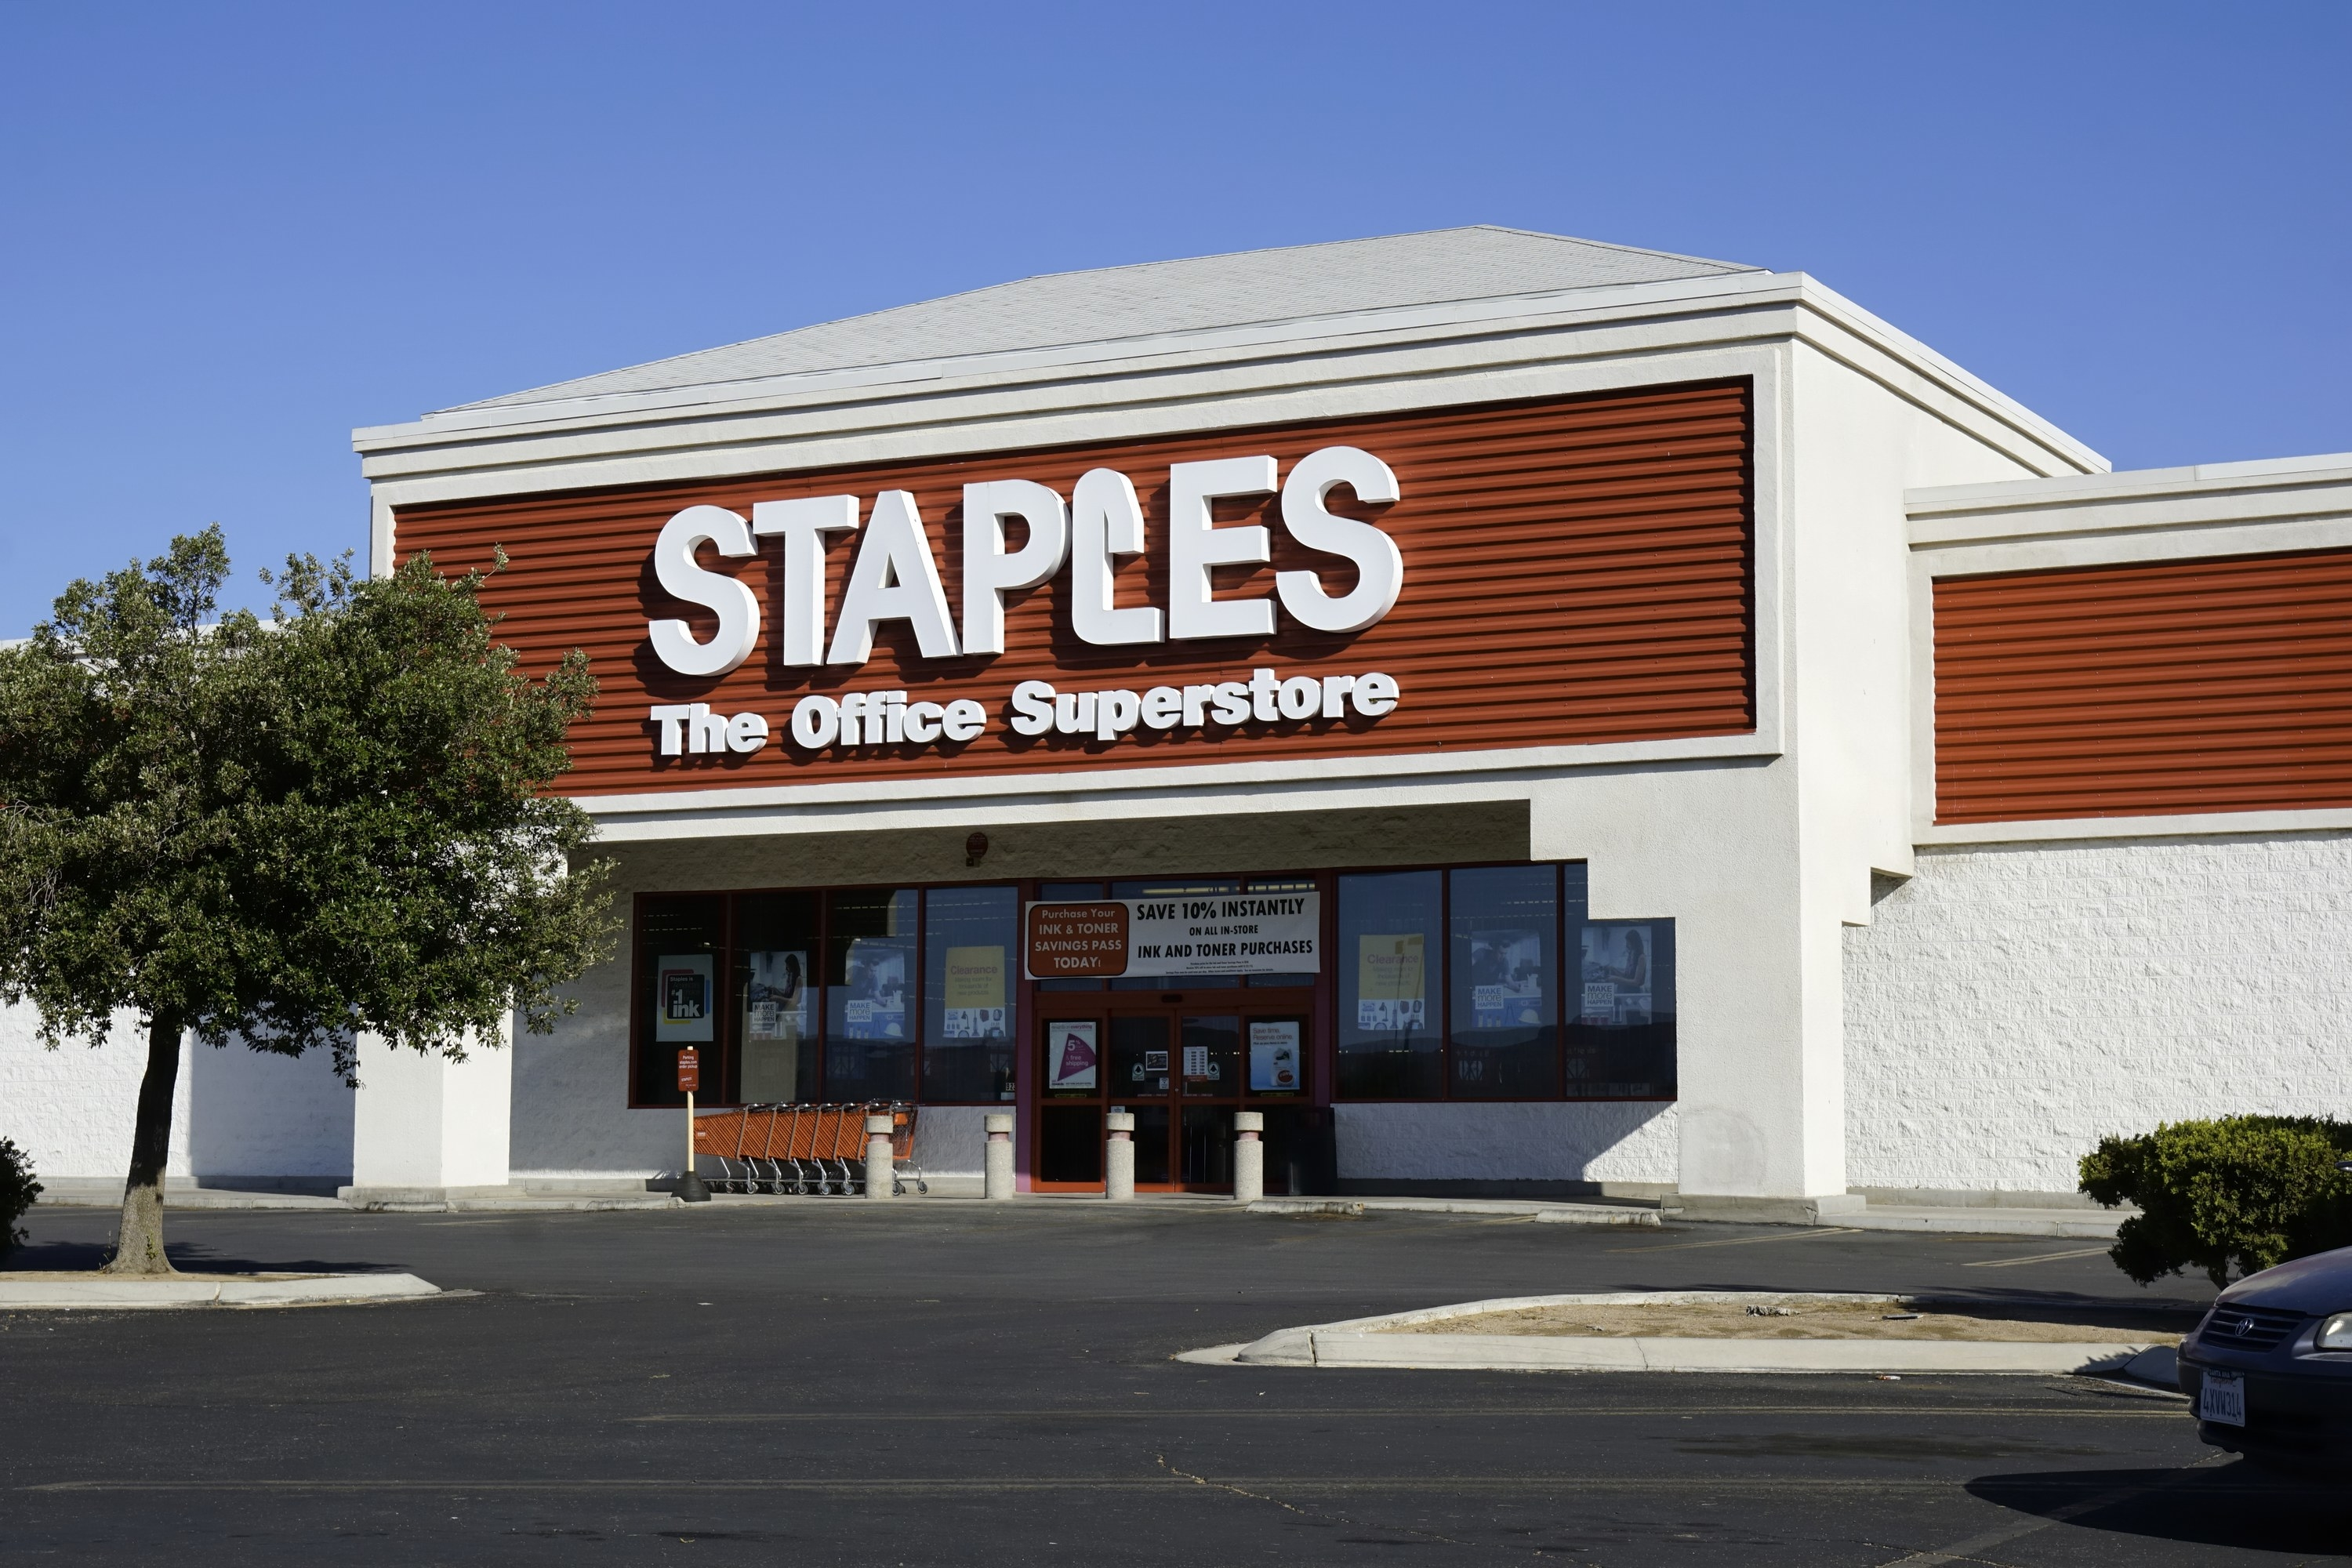 A Staples storefront